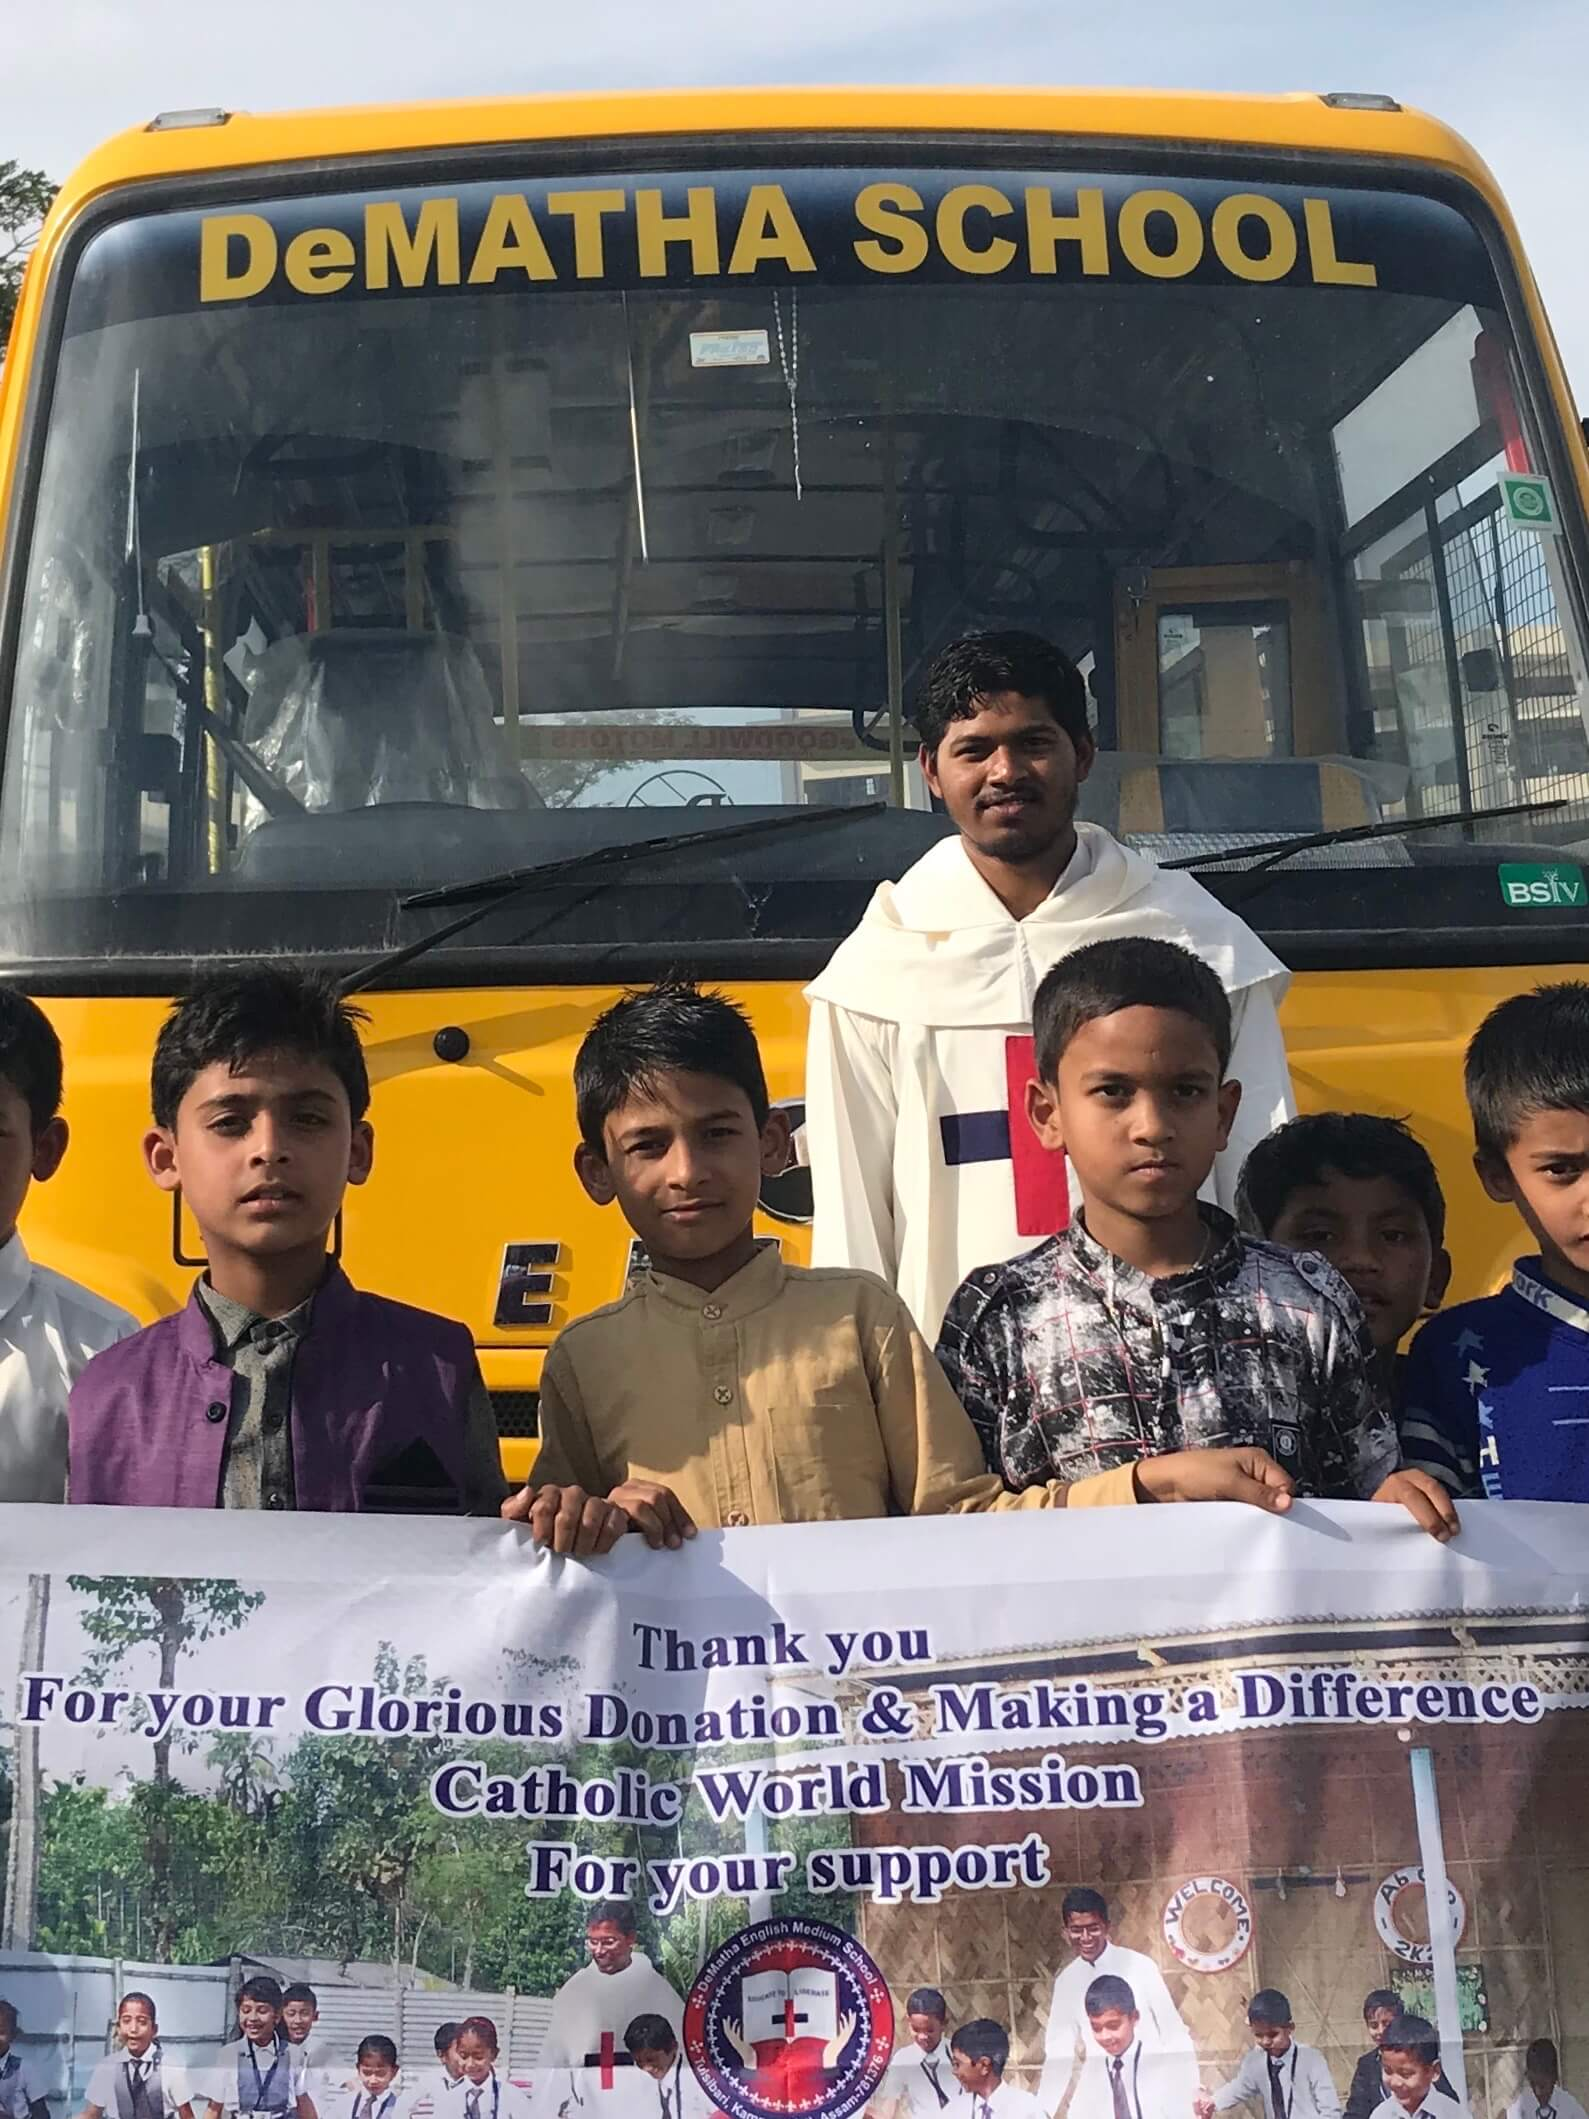 India - Trinitarian Fathers & school children - Thank you for the bus!